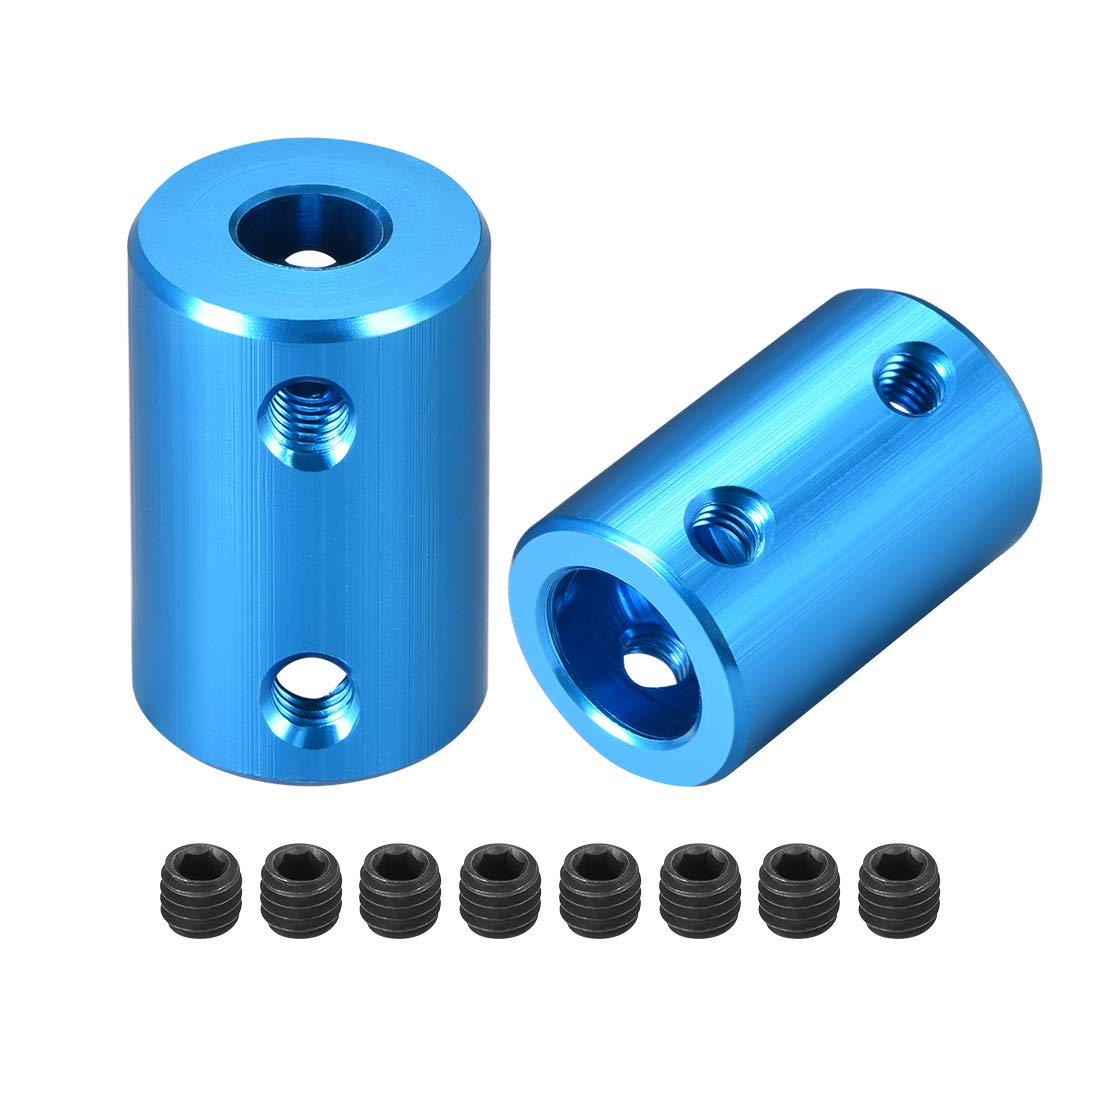 uxcell Shaft Coupling 6.35mm to 10mm Bore L25xD16 Robot Motor Wheel Rigid Coupler Connector Blue